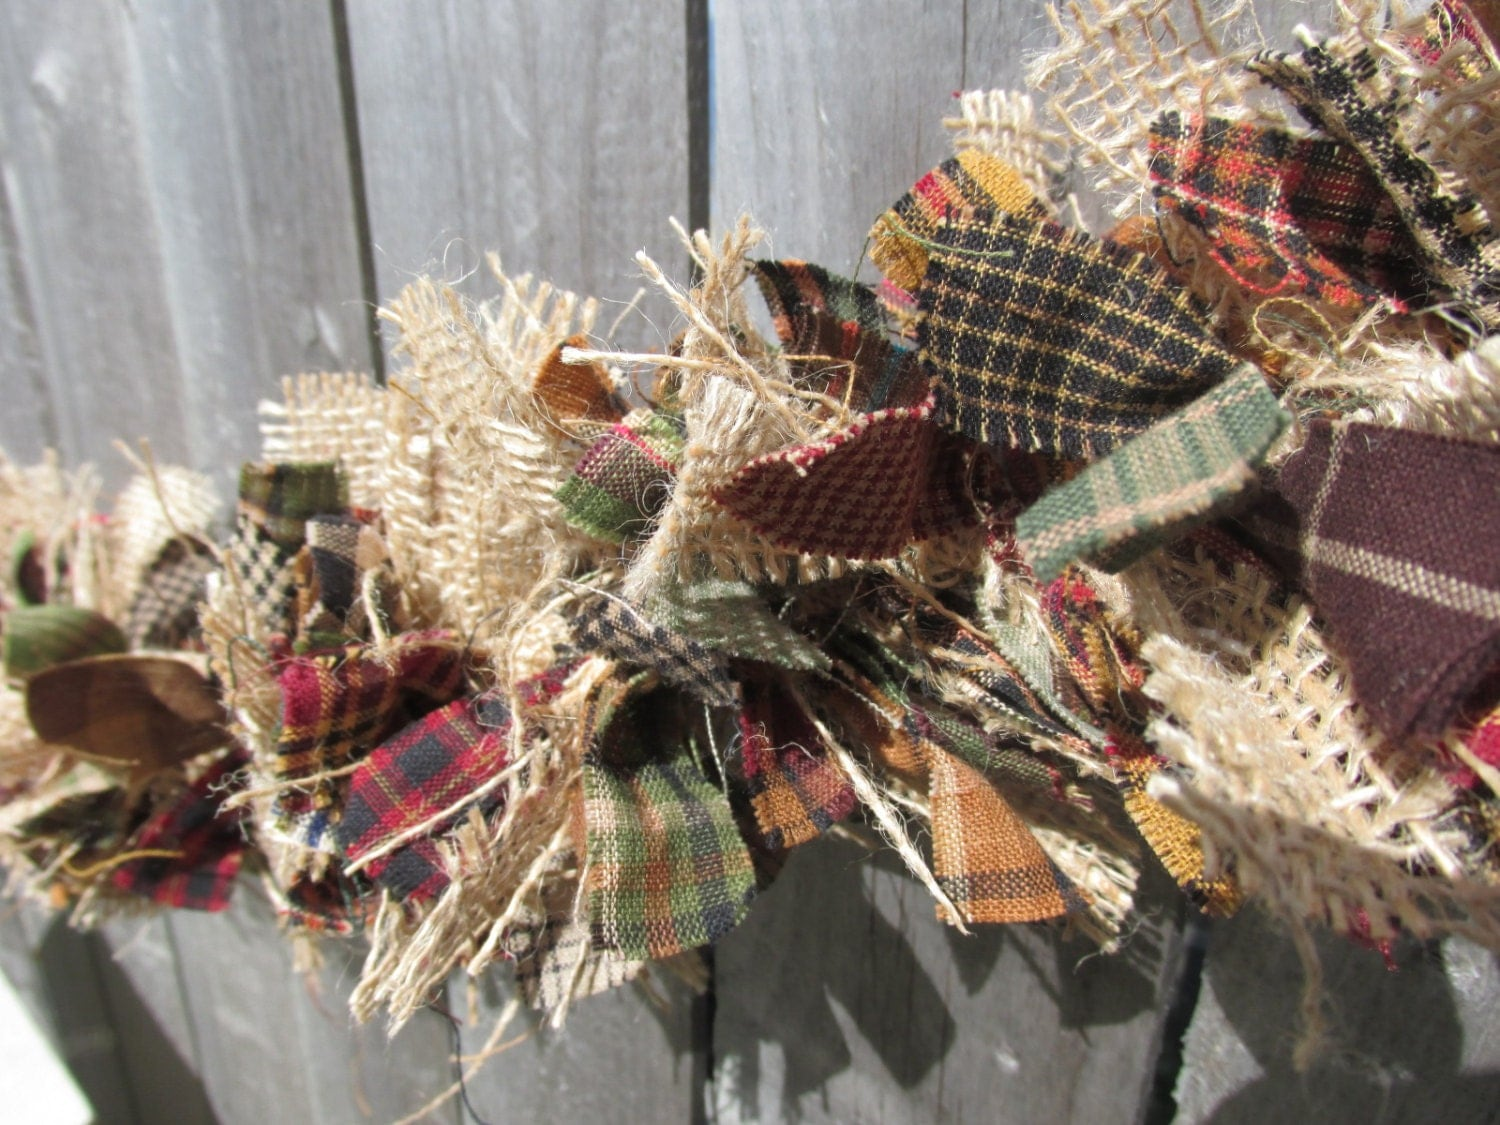 Crafters of all ages will enjoy making a primitive scrap ribbon Christmas tree ornament to gift or keep this holiday season. In this post, learn how to use shades of green and brown scrap ribbon to emulate the welcoming branches of a Christmas tree.